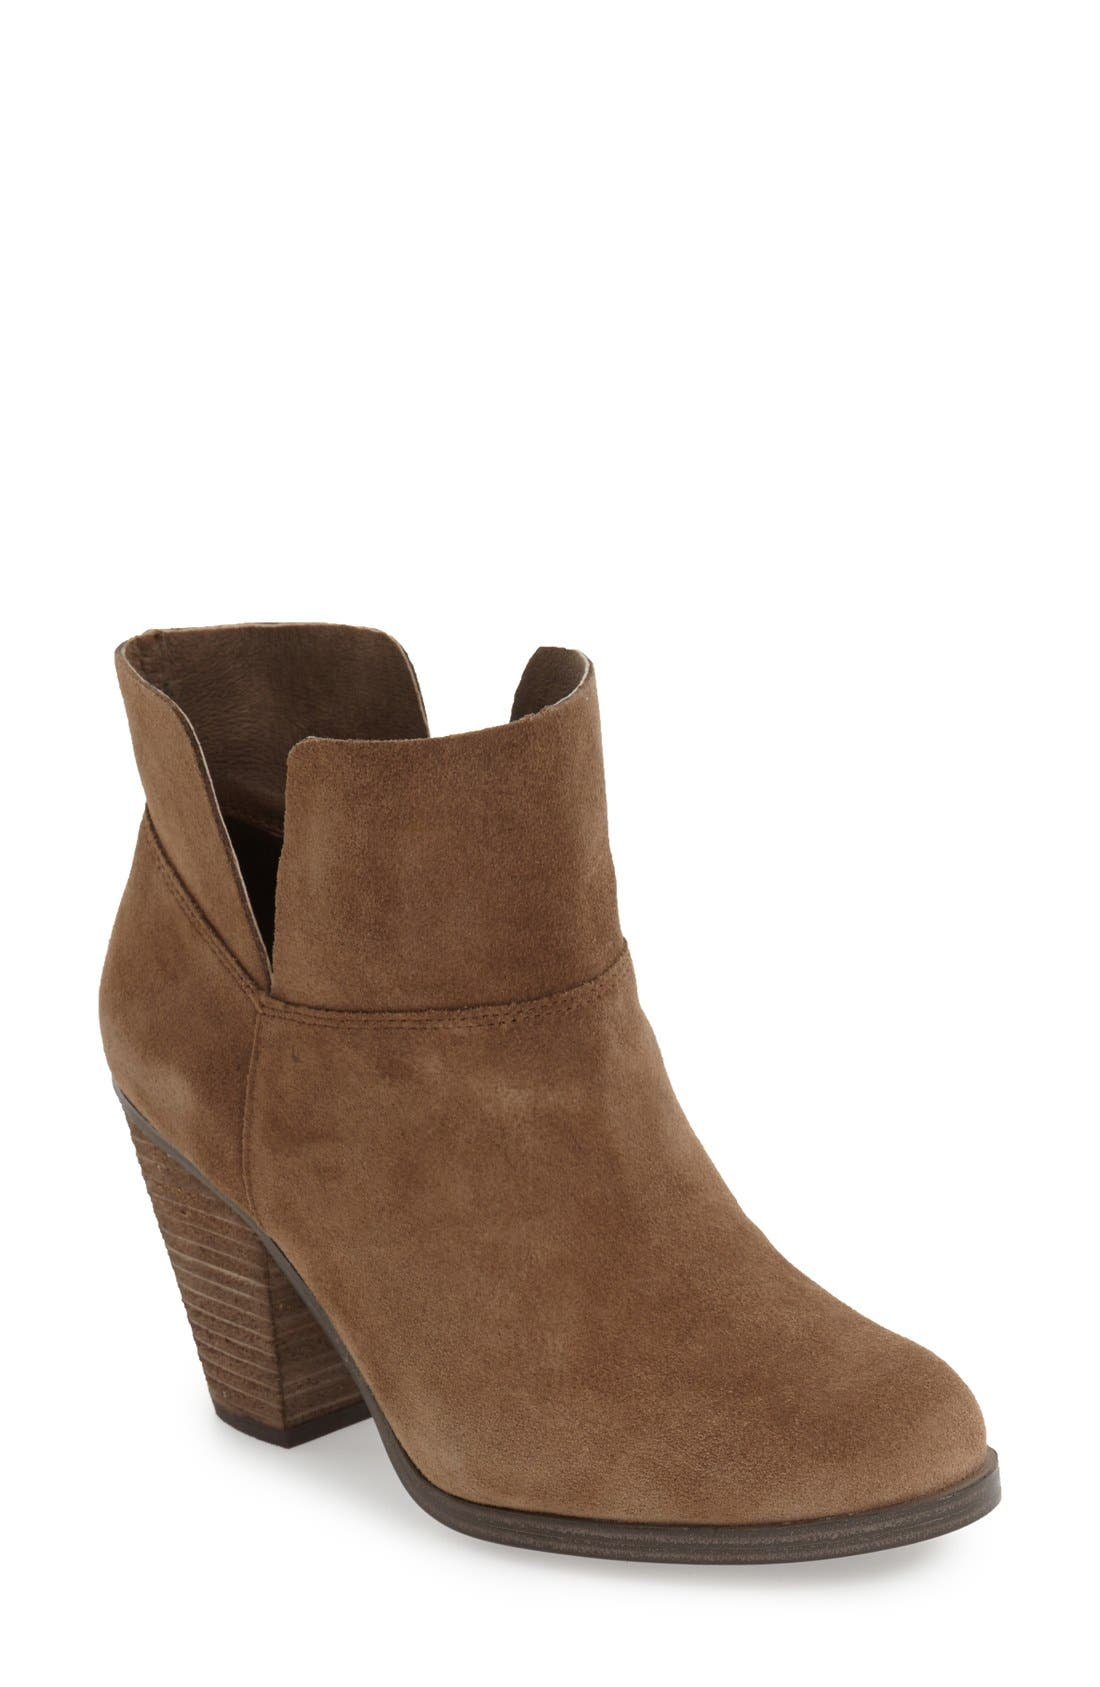 Main Image - Vince Camuto 'Helyn' Bootie (Women)